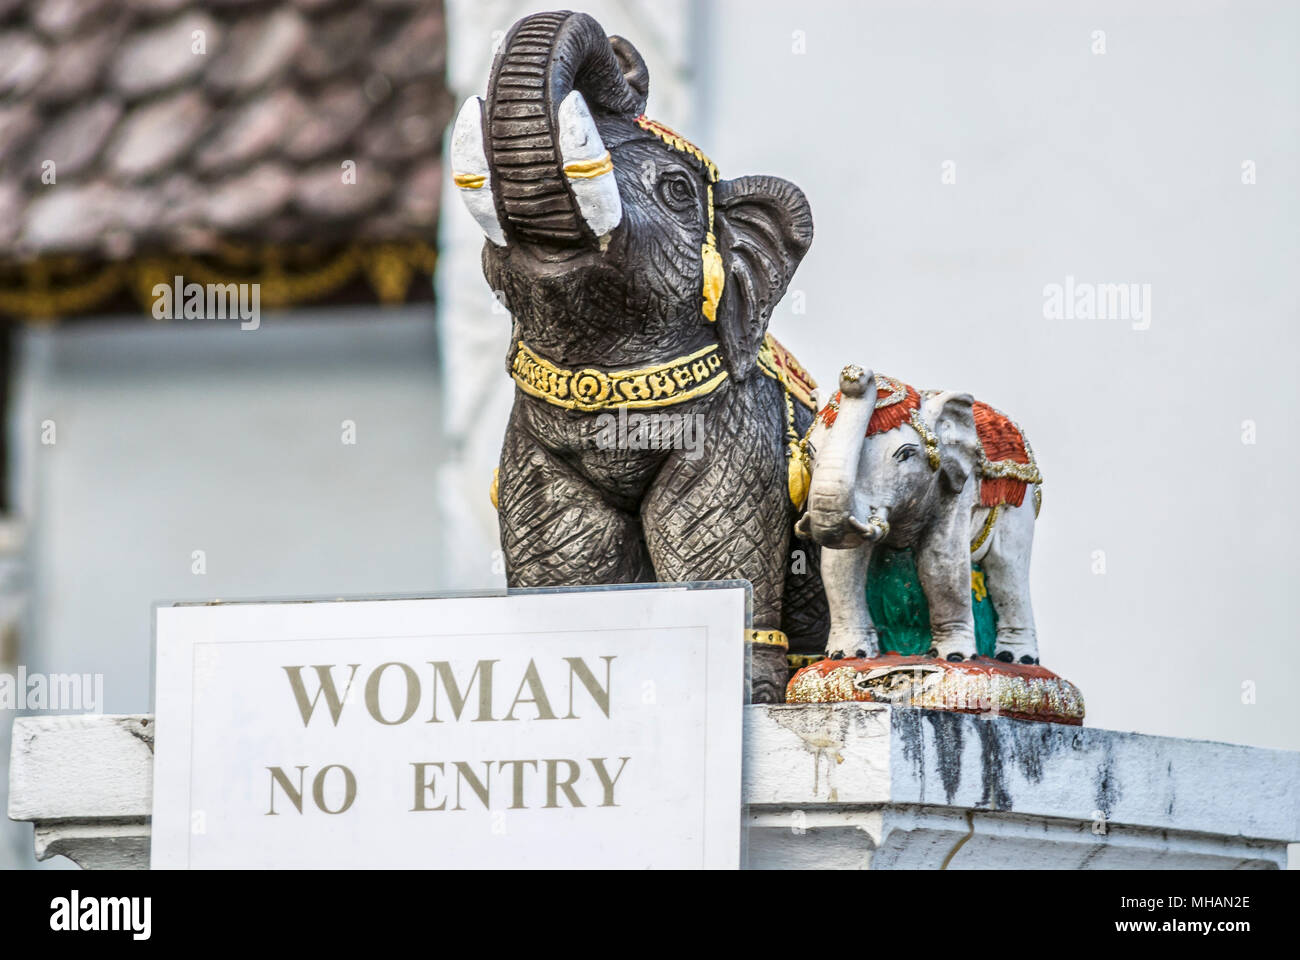 No Woman entry sign and elephant figurines at the buddhist temple Wat Chedi Luang, Chiang Mai, Thailand - Stock Image